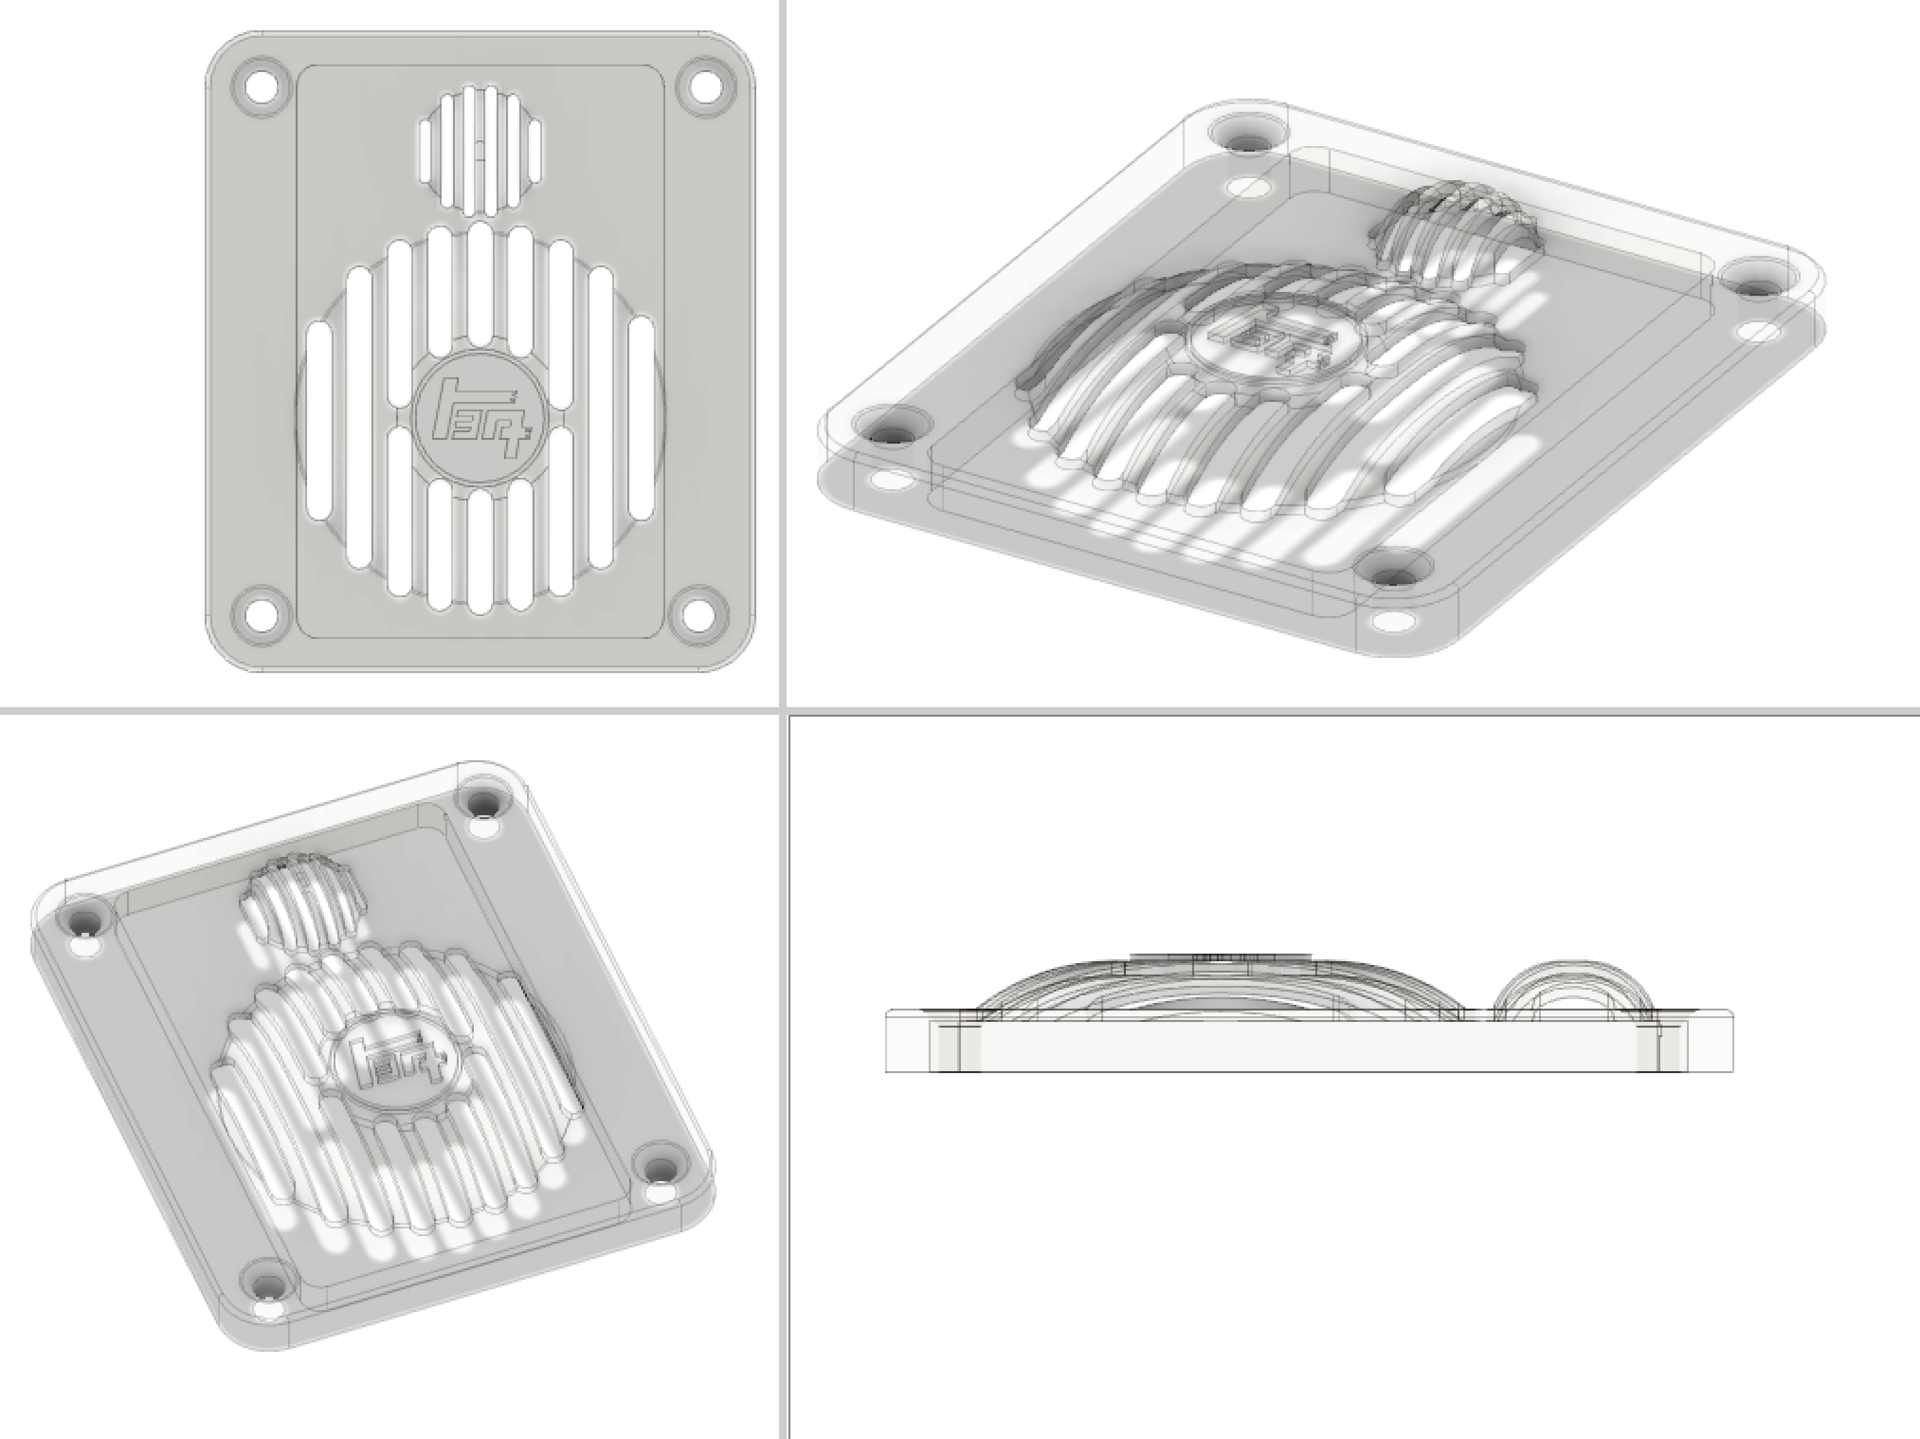 grille CAD